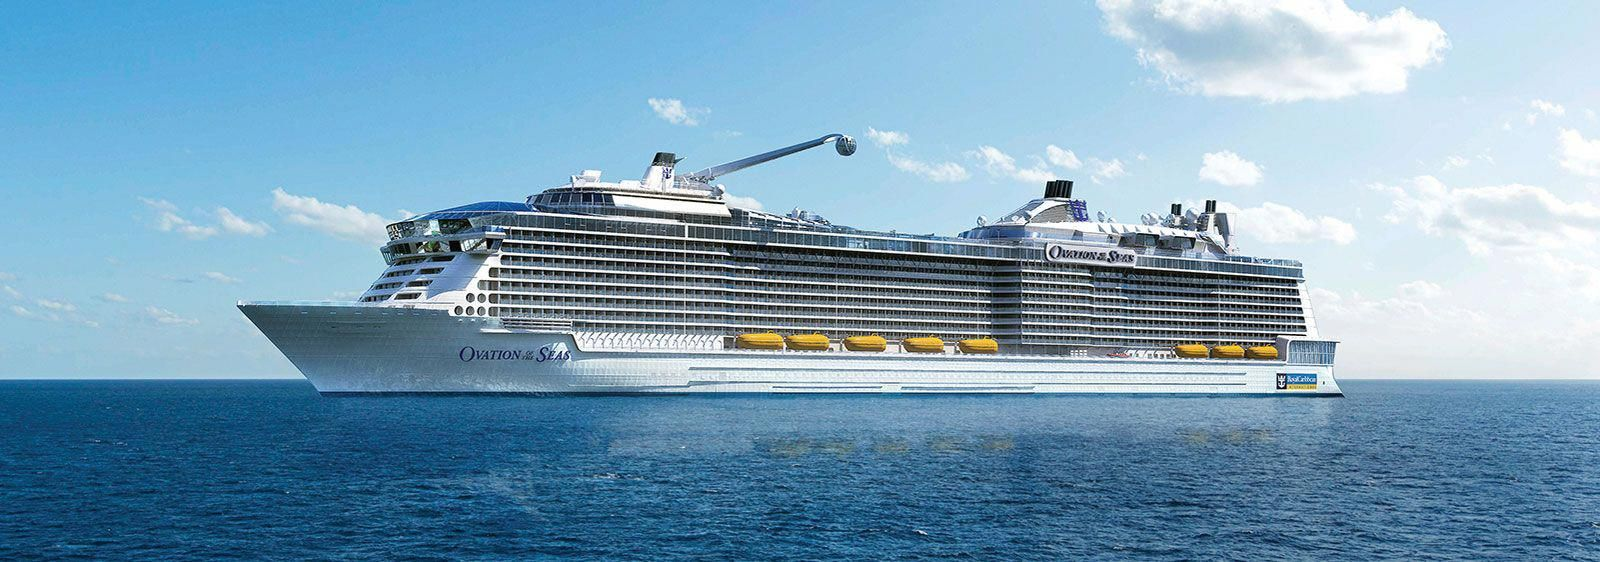 Find Out More Info On Enchantment Of The Seas Browse Through Our Website Anthem Of The Seas Royal Caribbean Cruise Royal Caribbean Ships